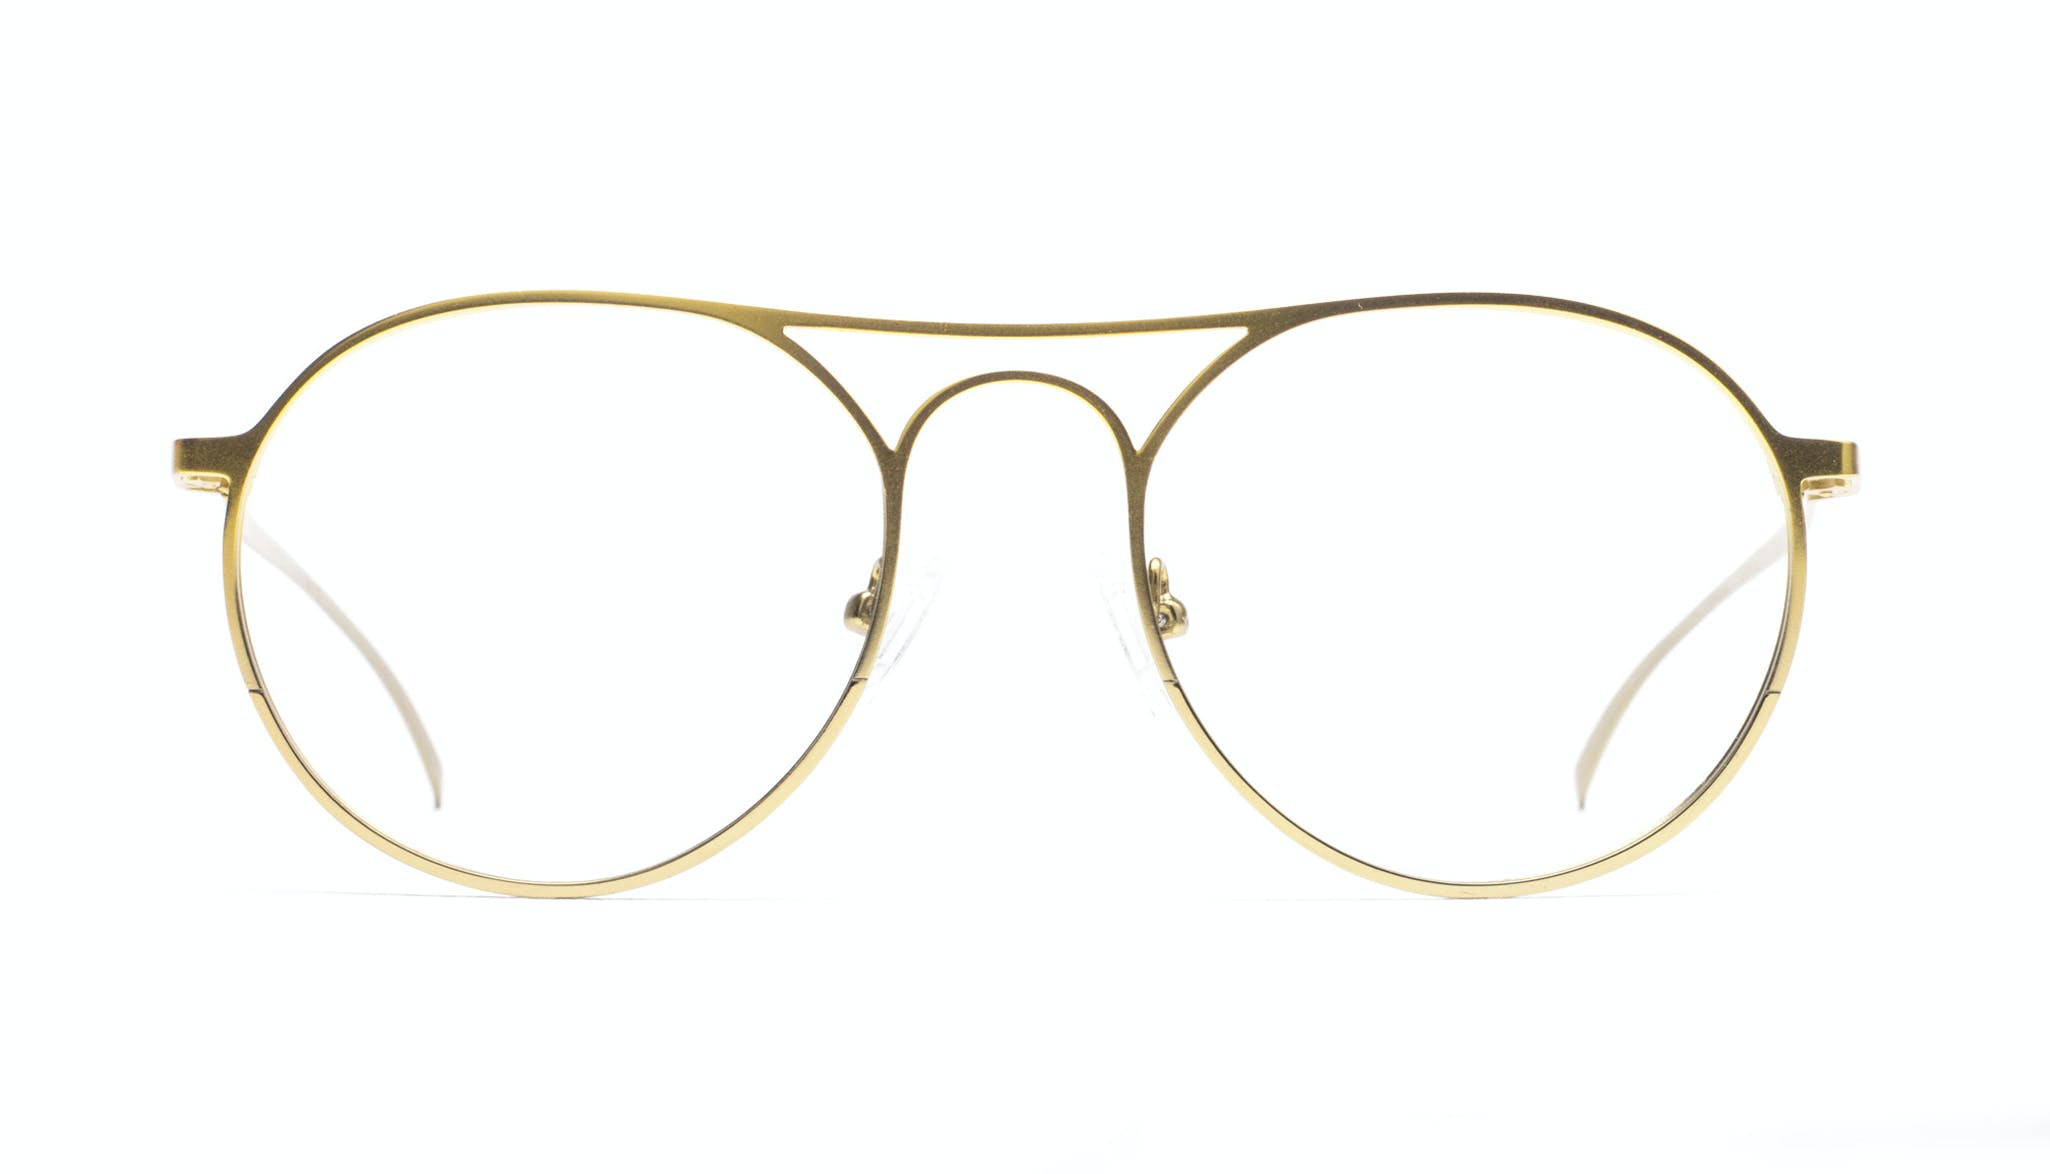 Affordable Fashion Glasses Aviator Round Eyeglasses Men Contour Gold Front